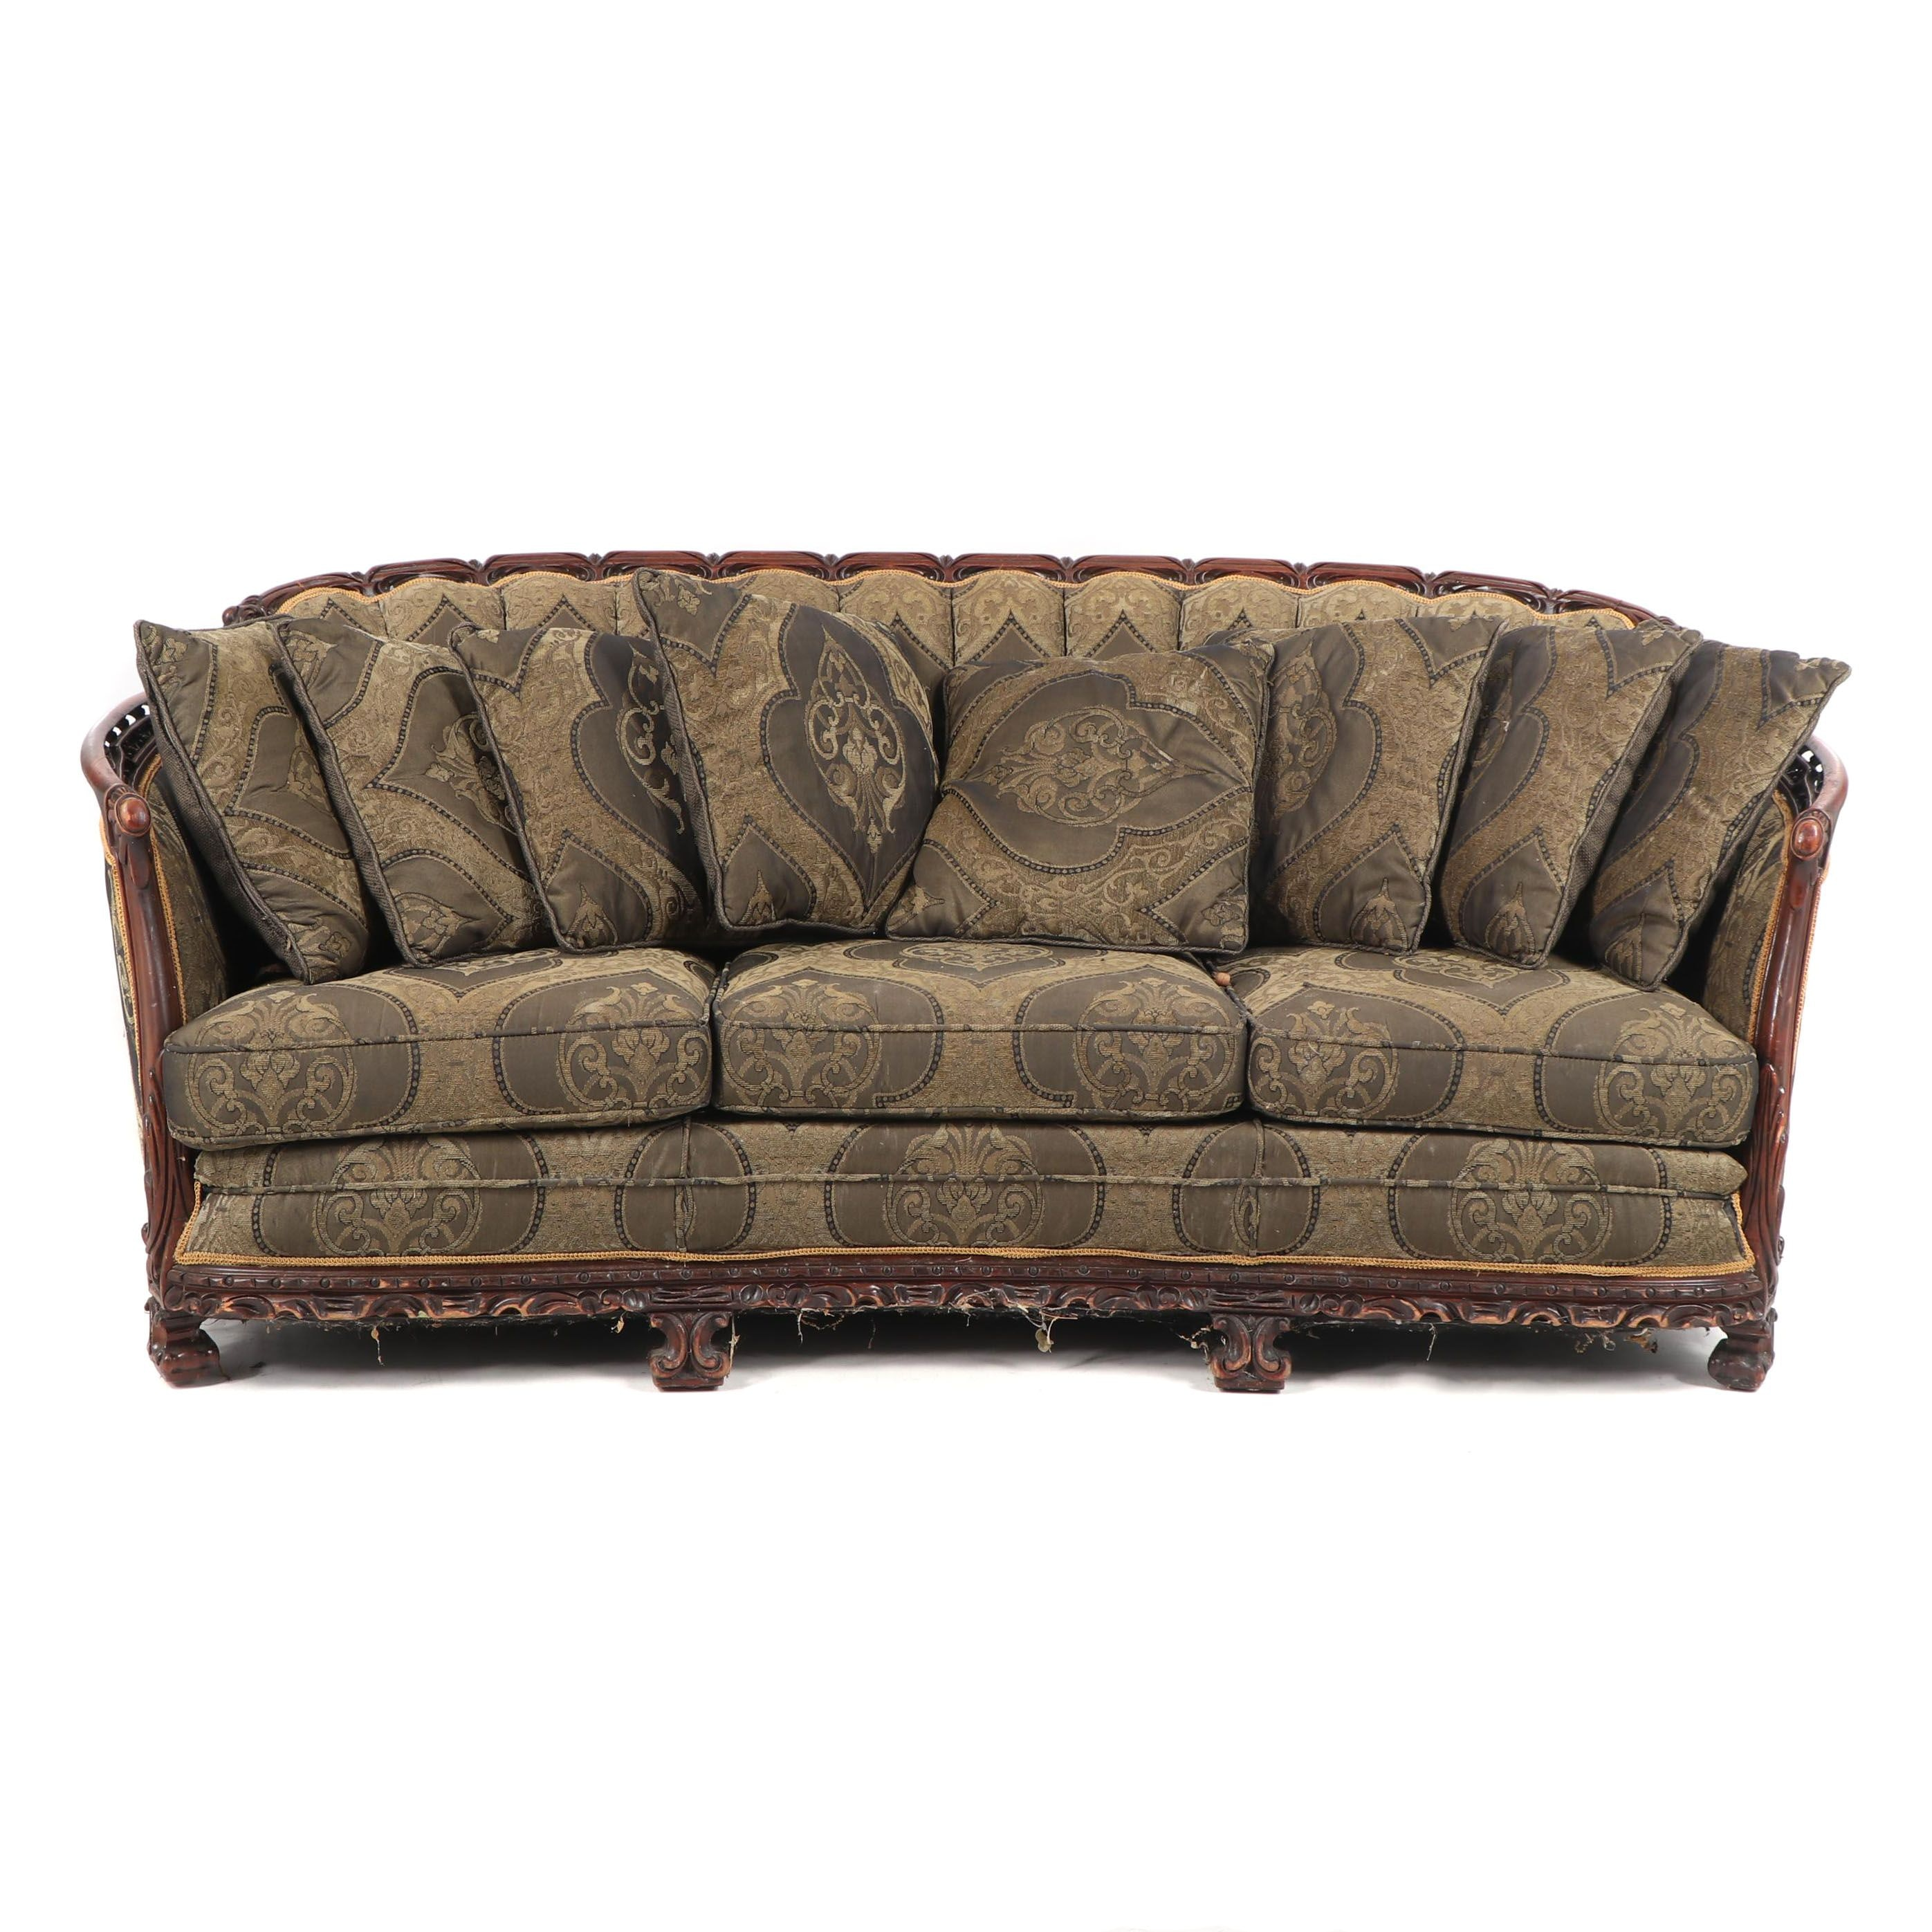 Victorian Style Carved Wood Frame Upholstered Sofa, Early 20th Century